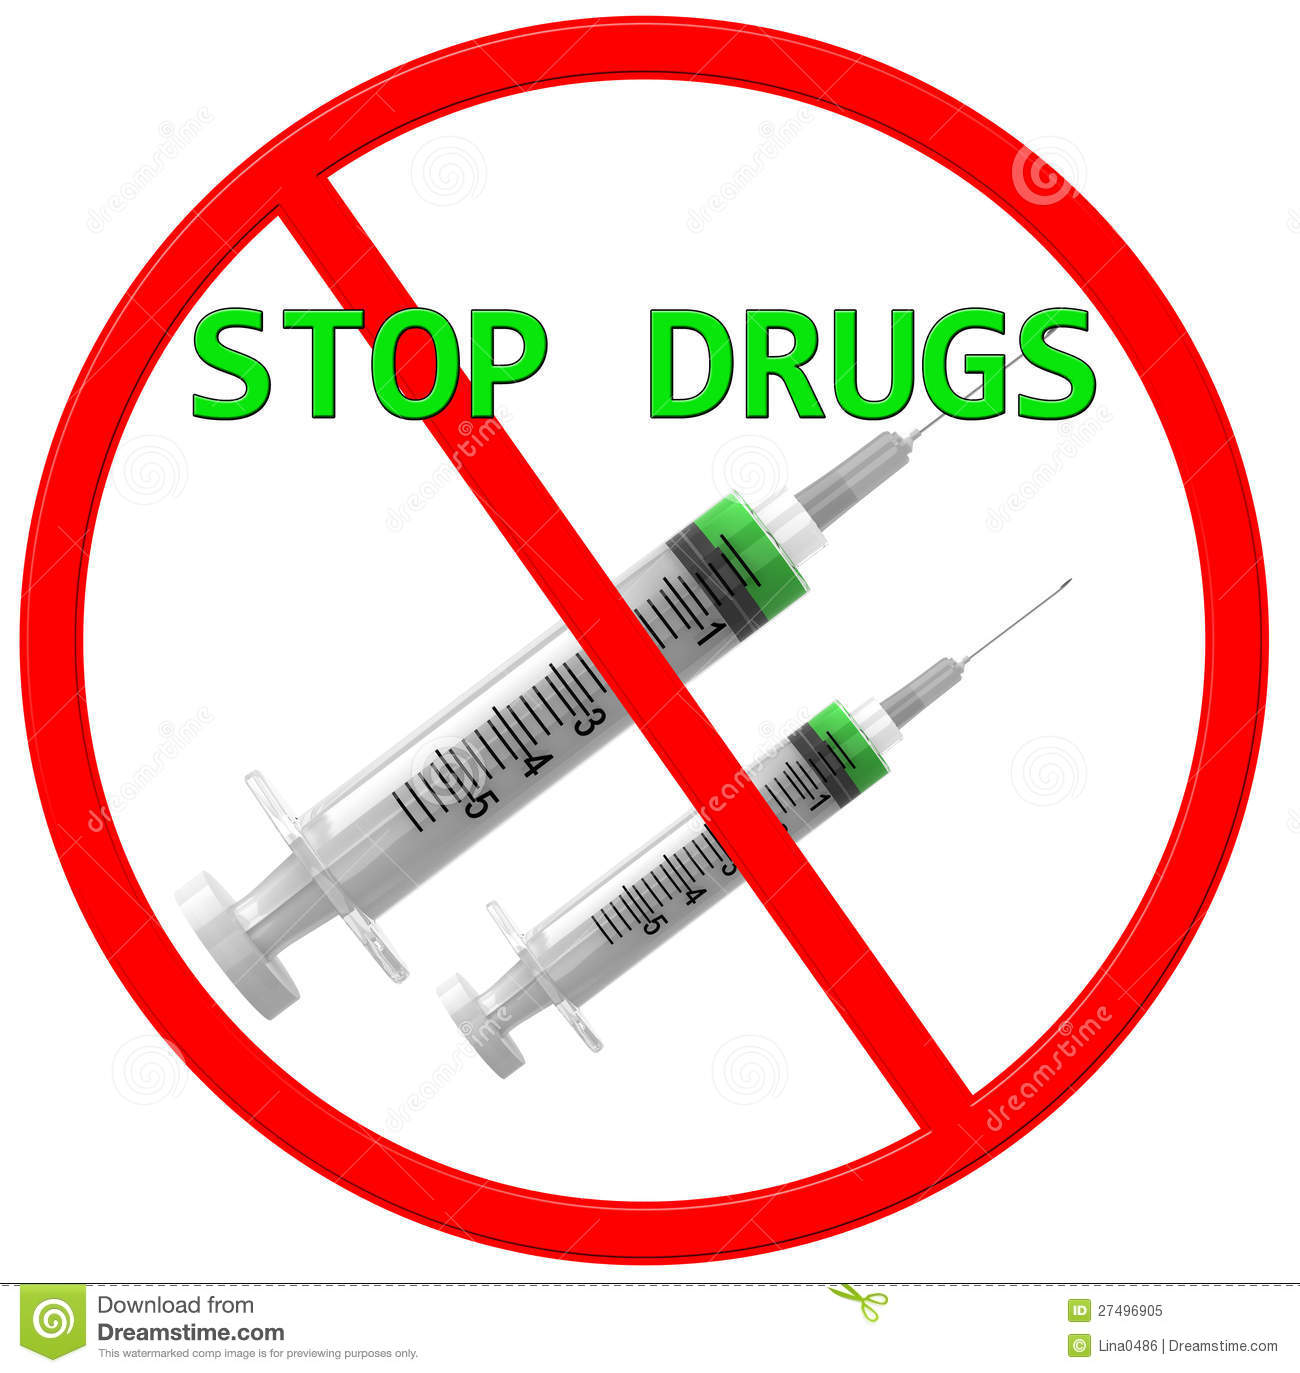 Stop Taking Drugs - Stop Taking Drugs - Video